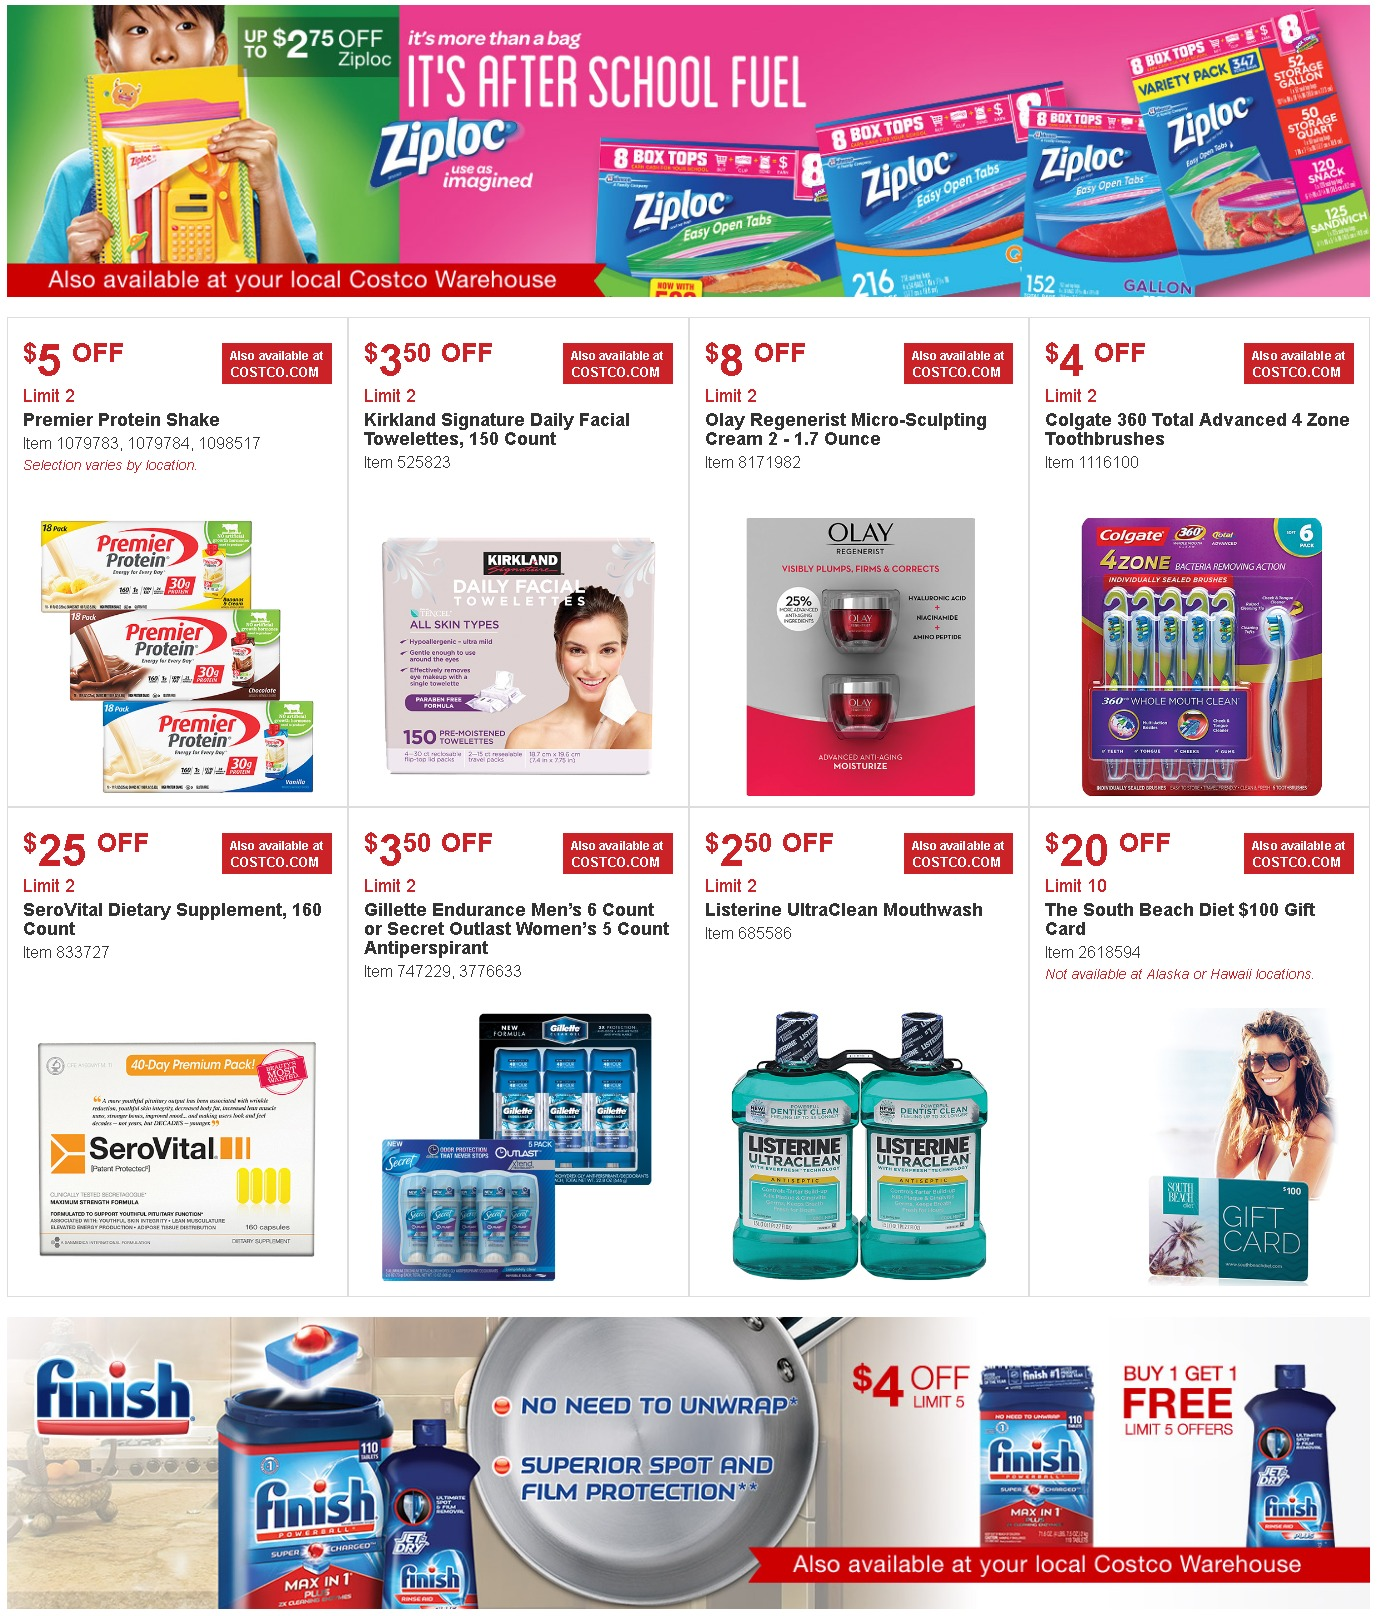 Deal Costco Canada Online Offers Valid From Feb 28 To Mar: Costco Coupon Offers August 3